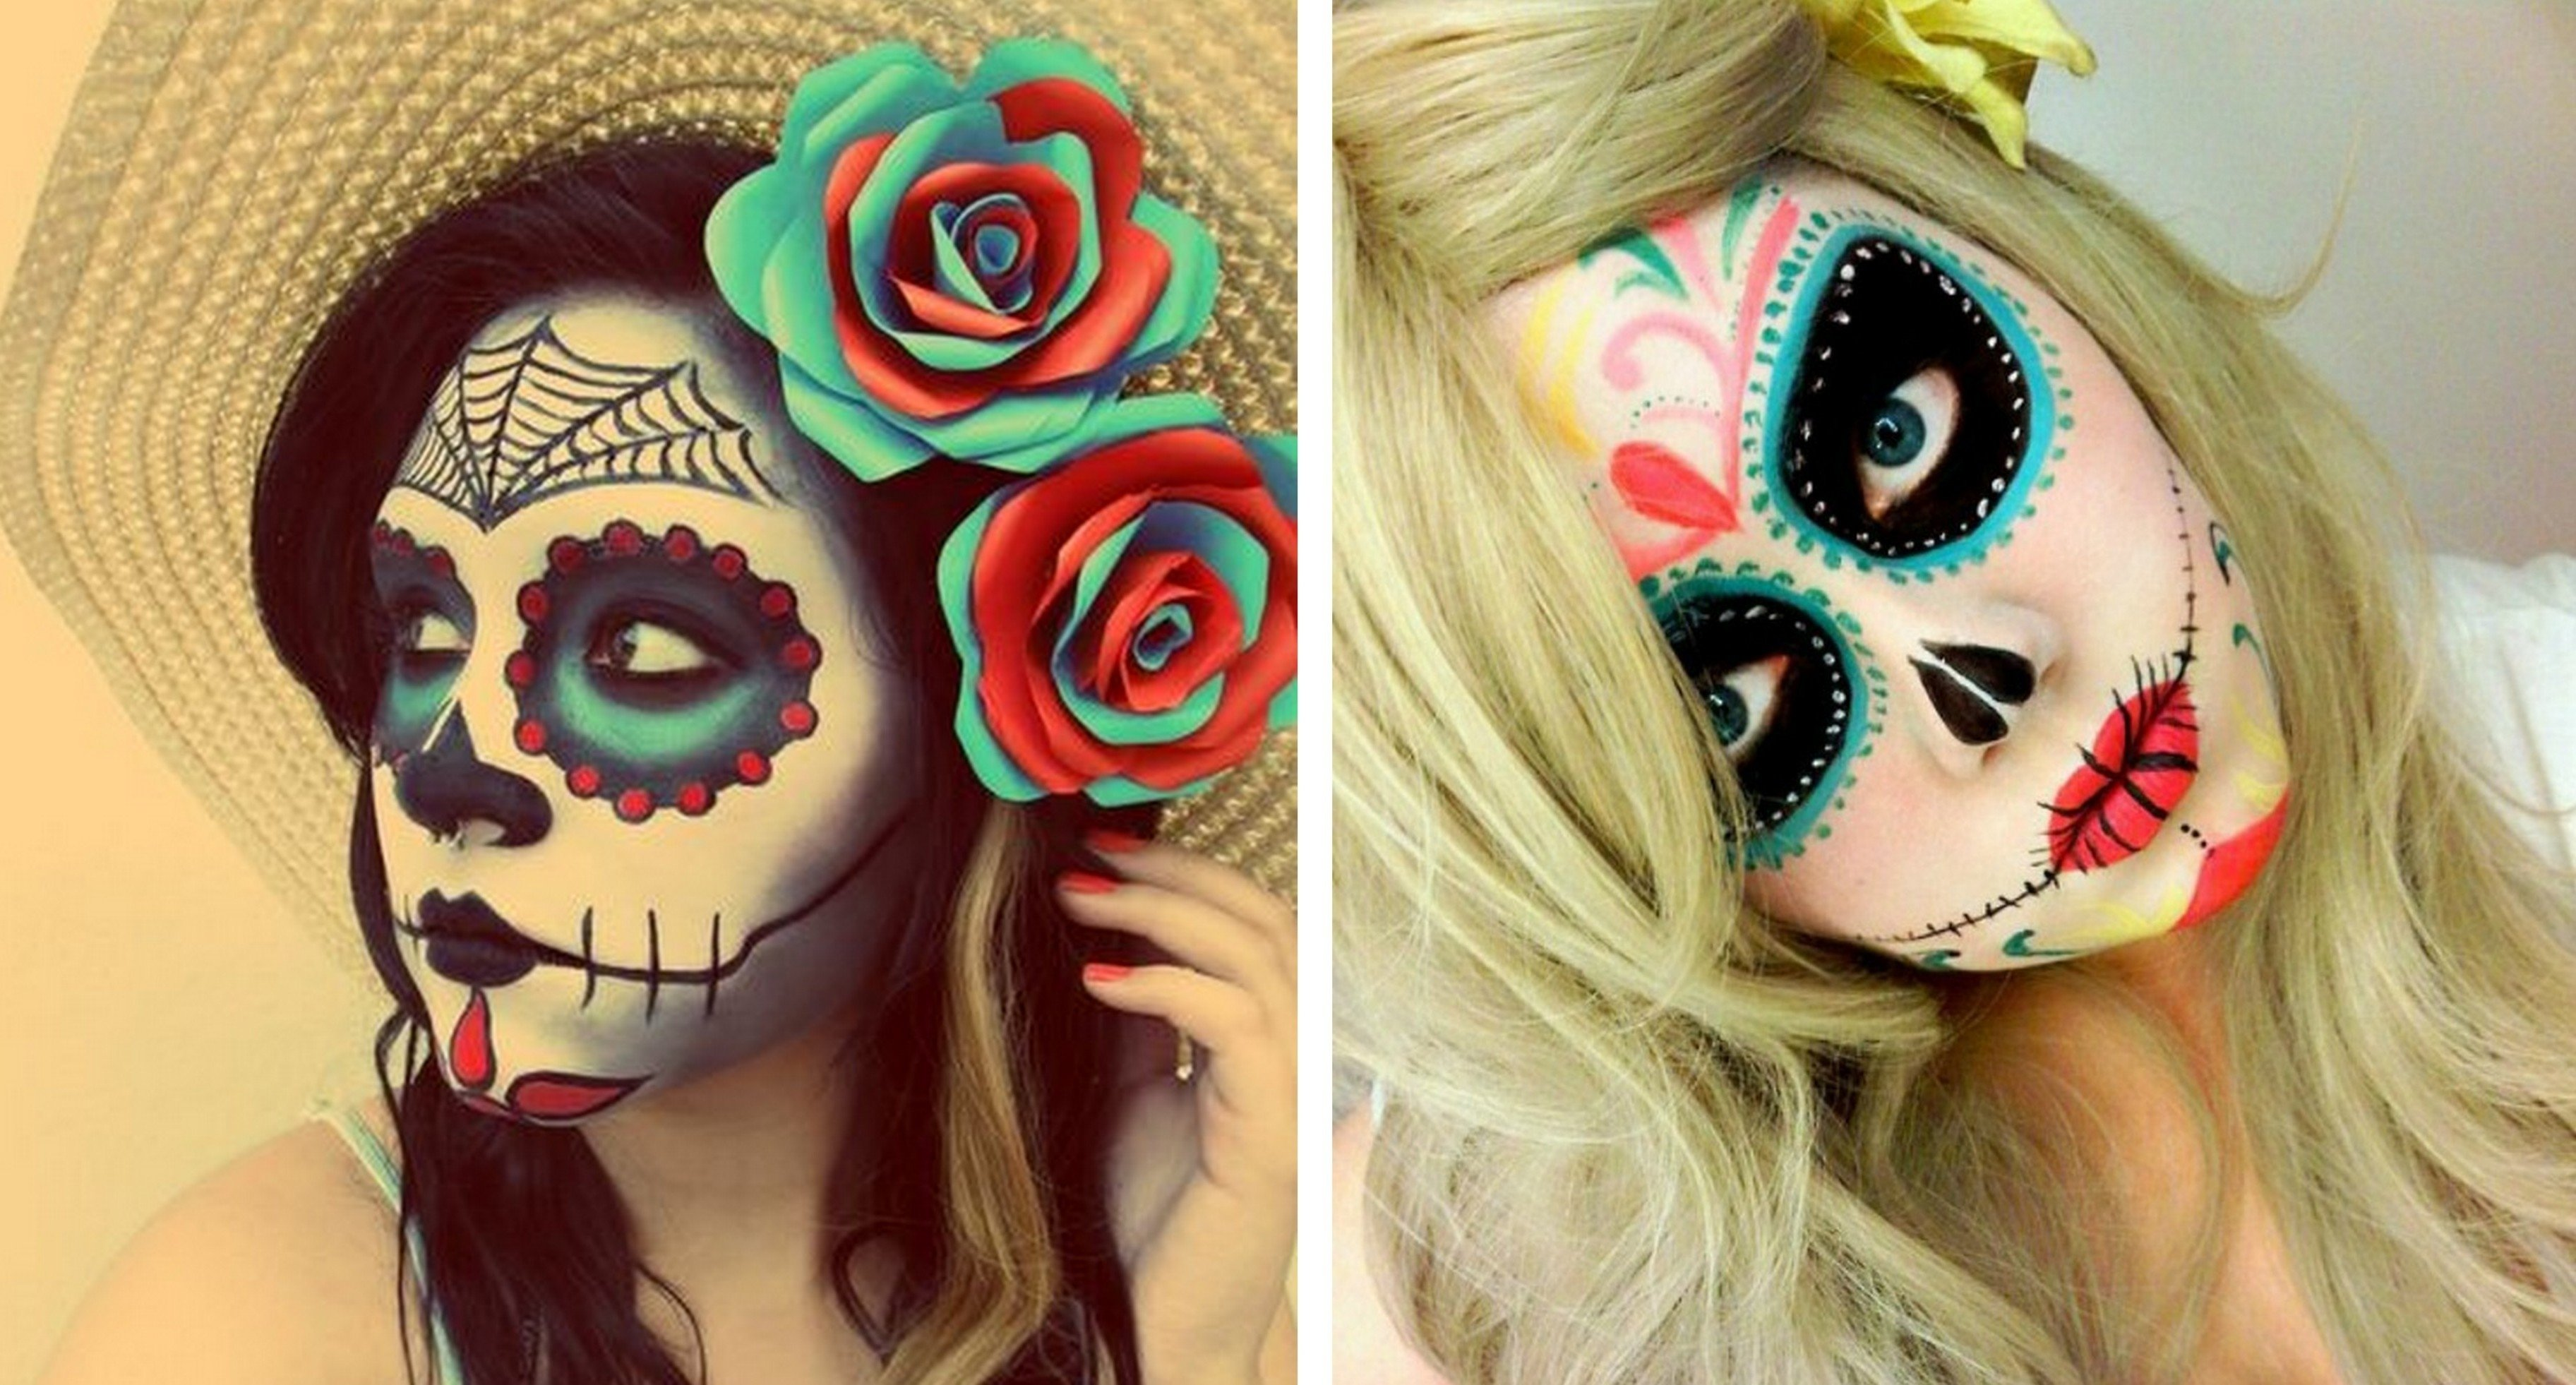 the beauty junkies: old school, new school: halloween 2013 costume ideas